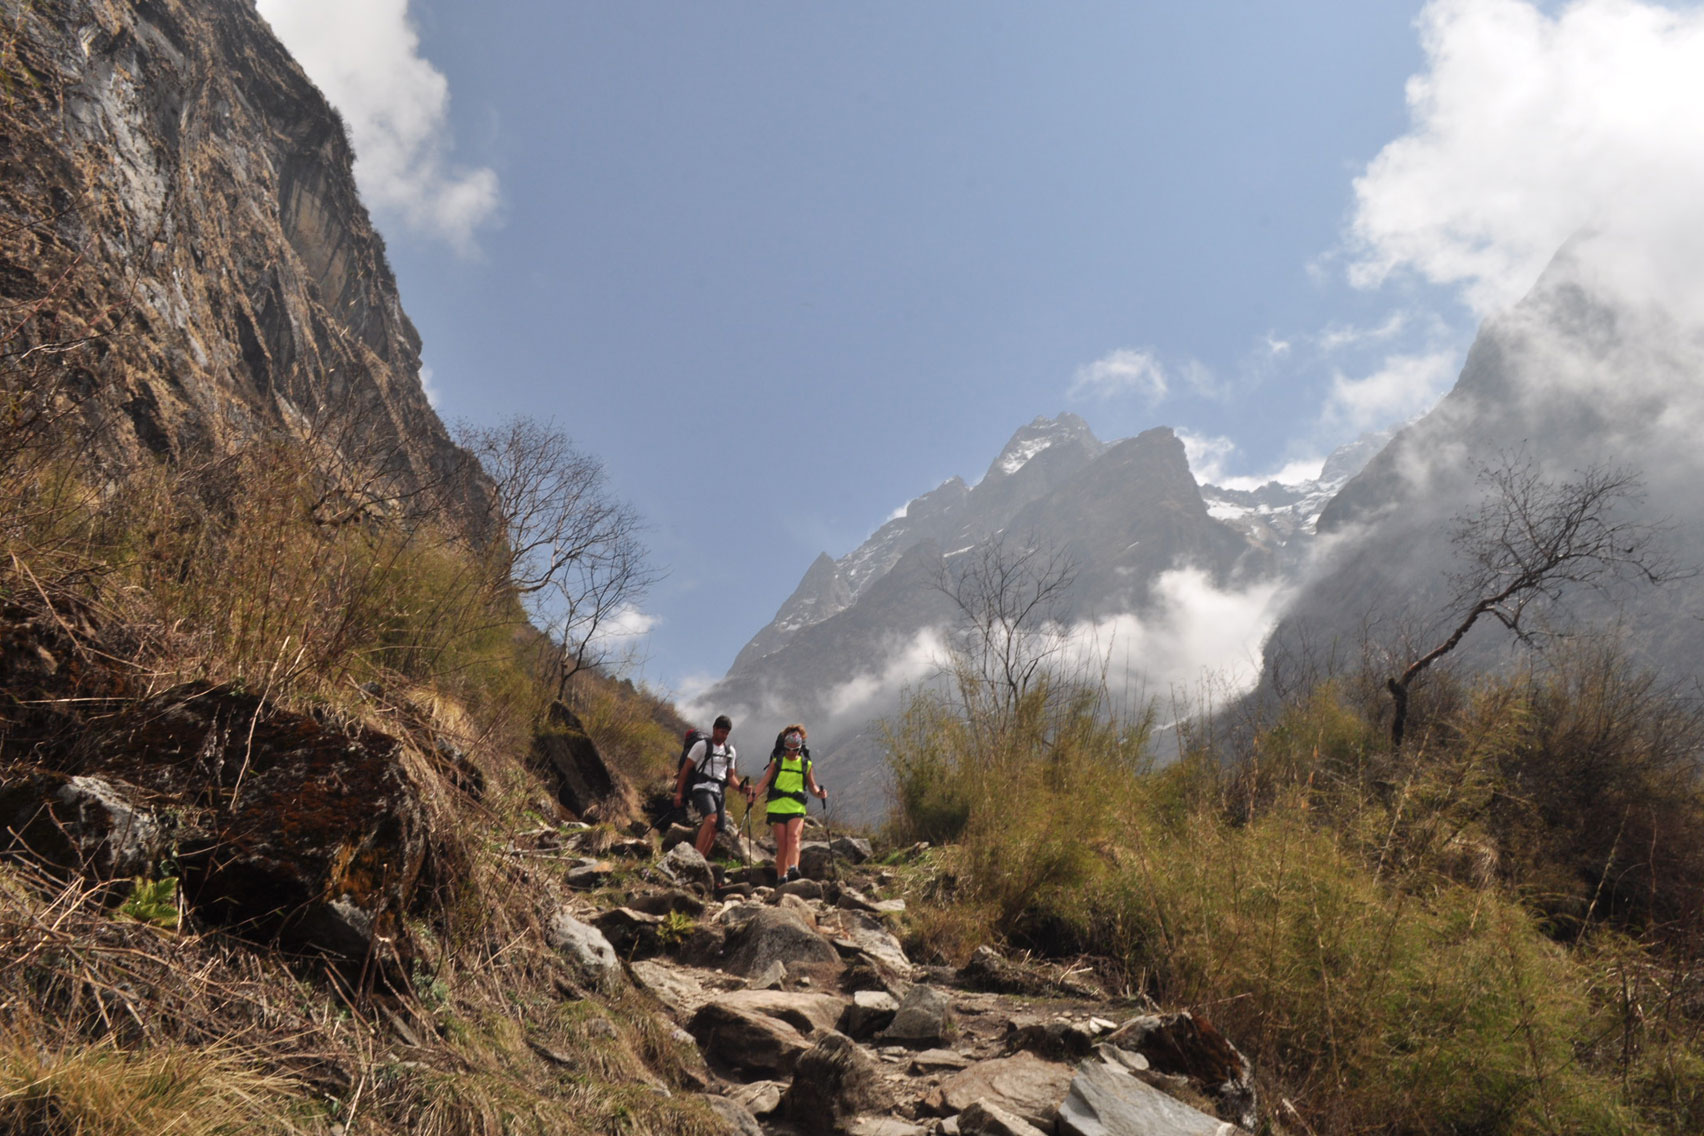 Day 10: Trek from ABC (4130m) to Bamboo (7hrs, 2310m)